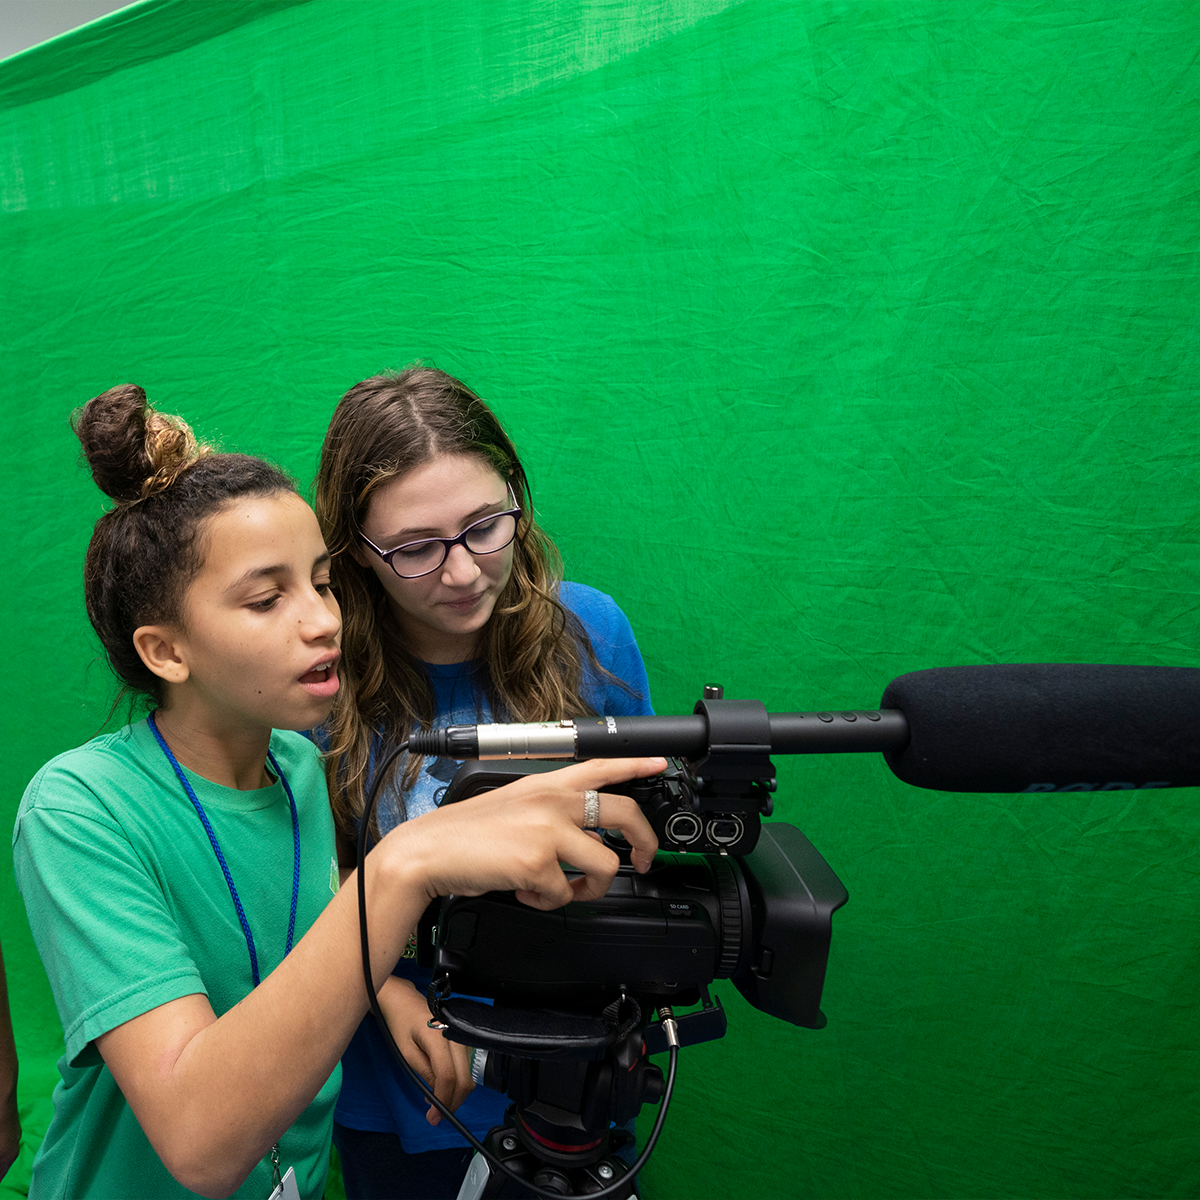 Two students using camera in front of a green screen